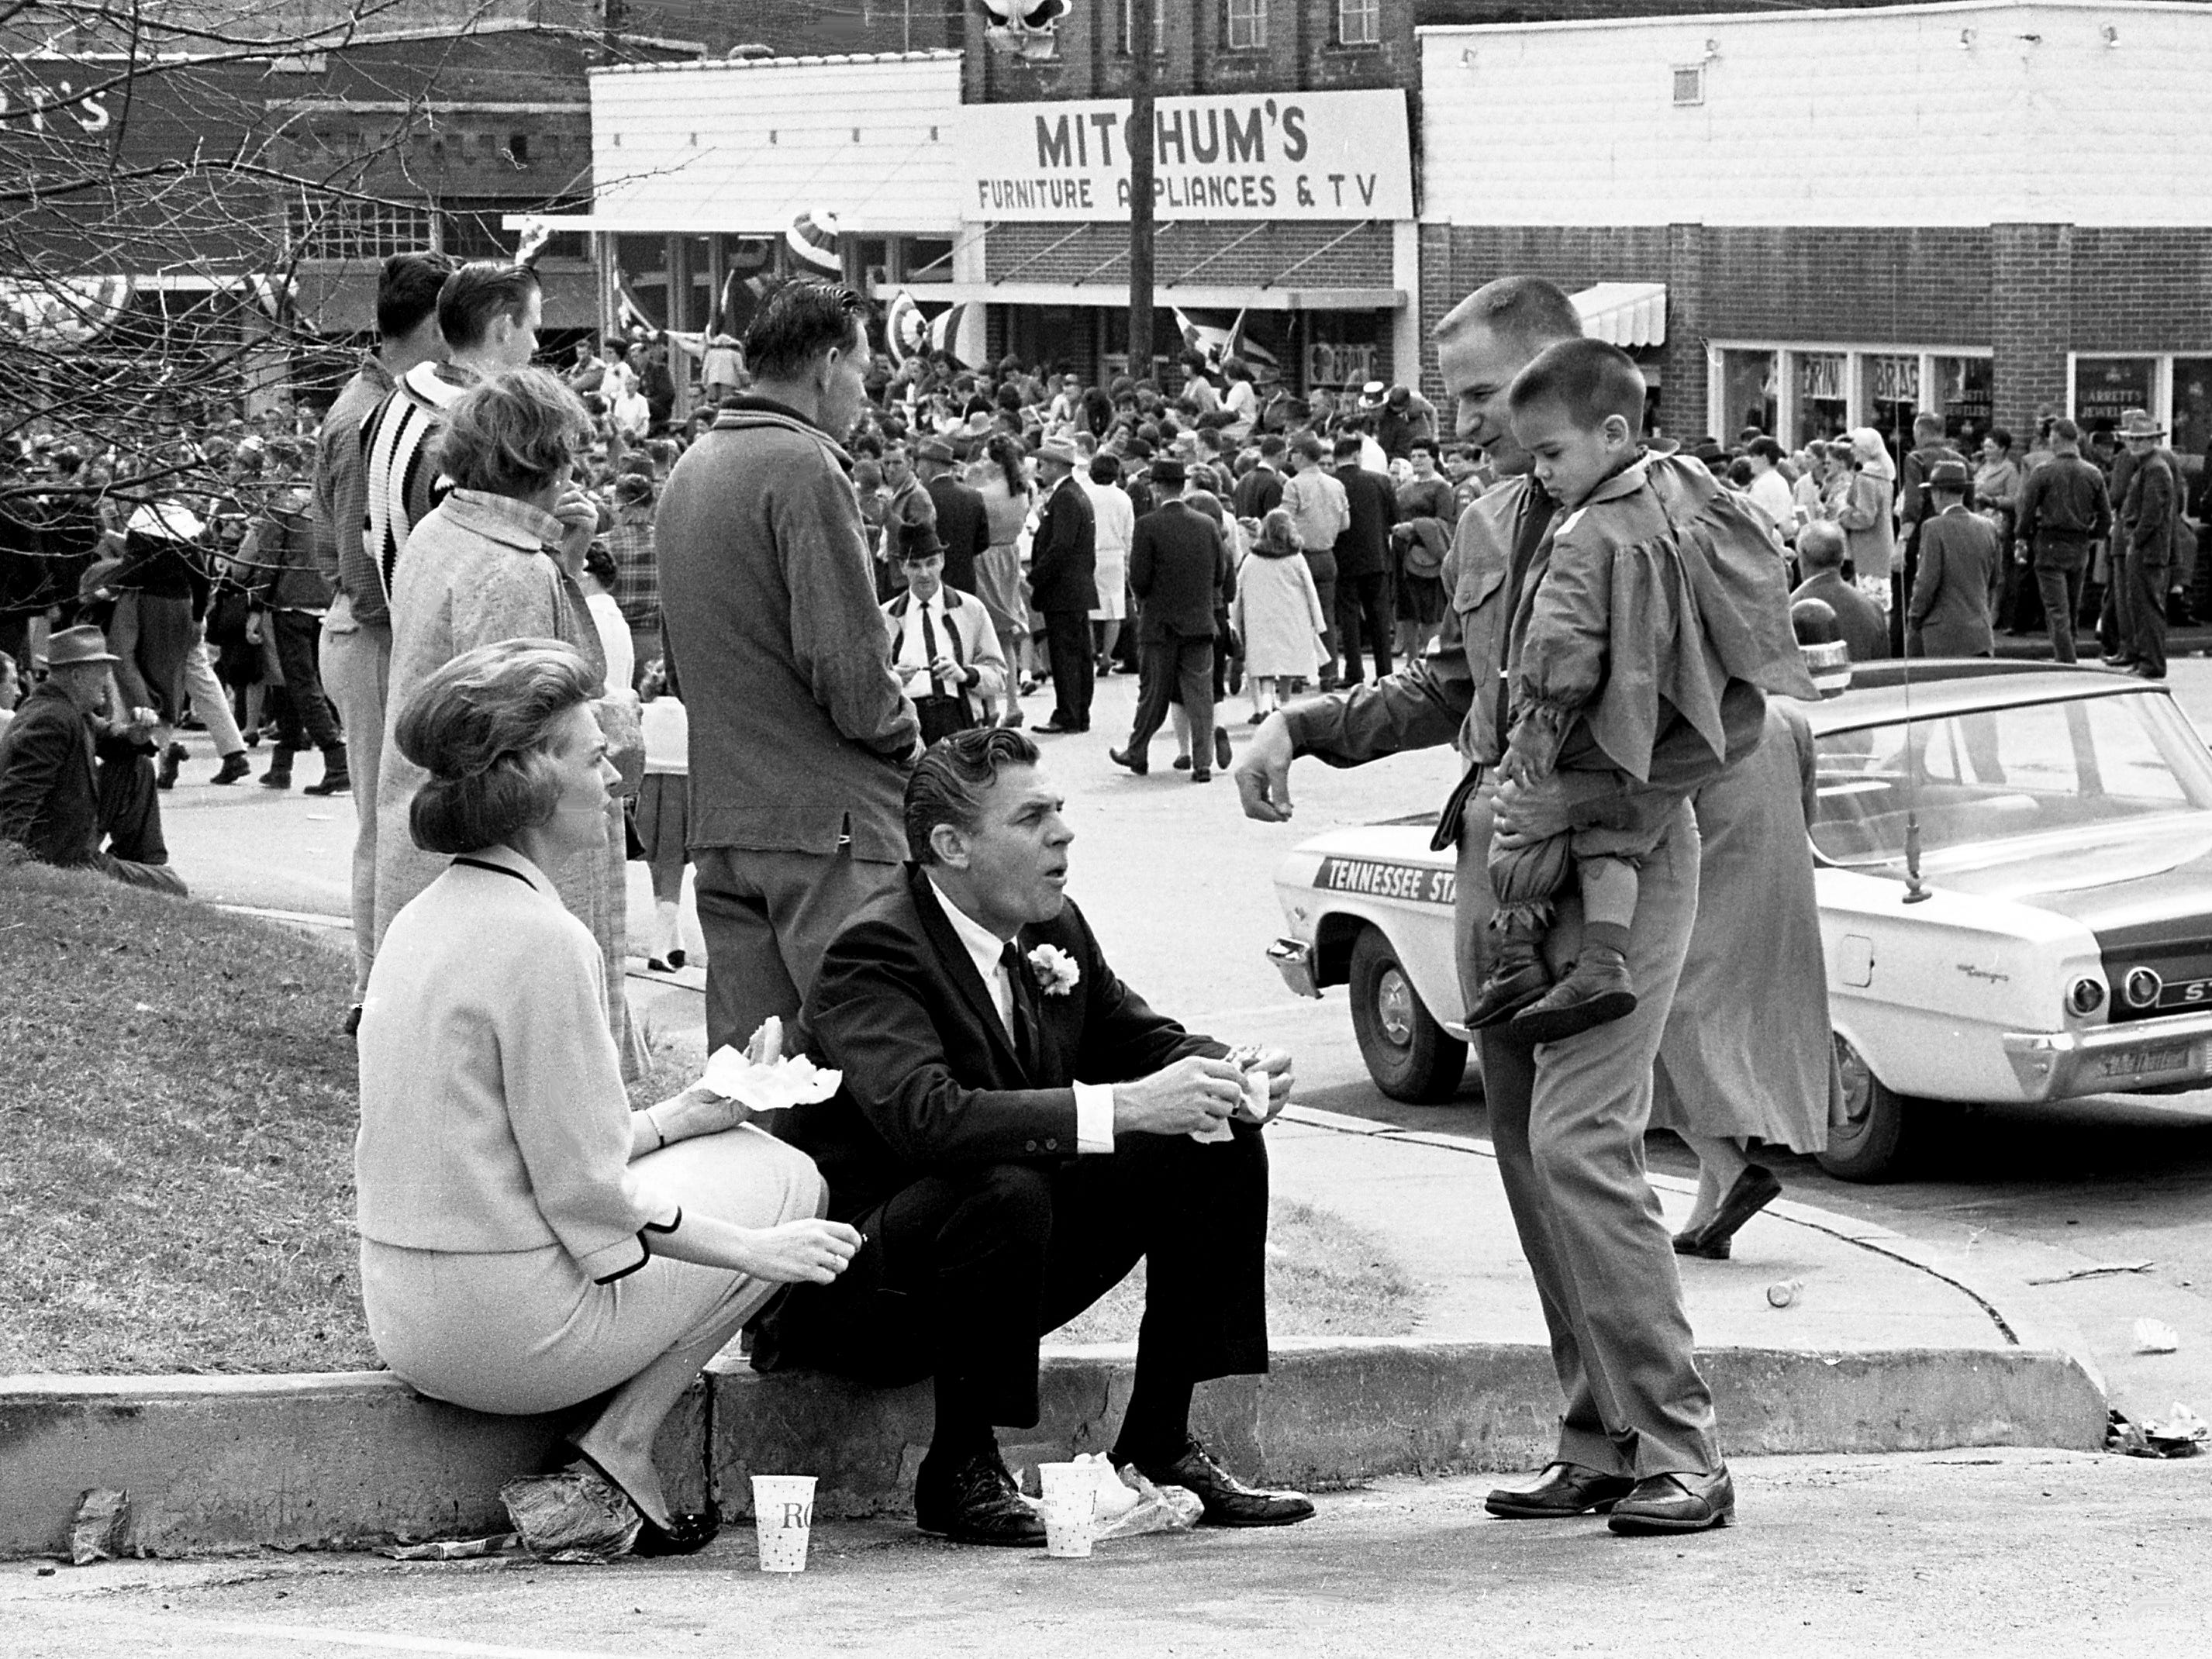 Congressman Ross Bass, center, and wife Avanell, left, share a moment with another as they grab a bite at the end of the parade during the second annual Wearing of the Green celebration in Erin, Tenn. March 14, 1964.